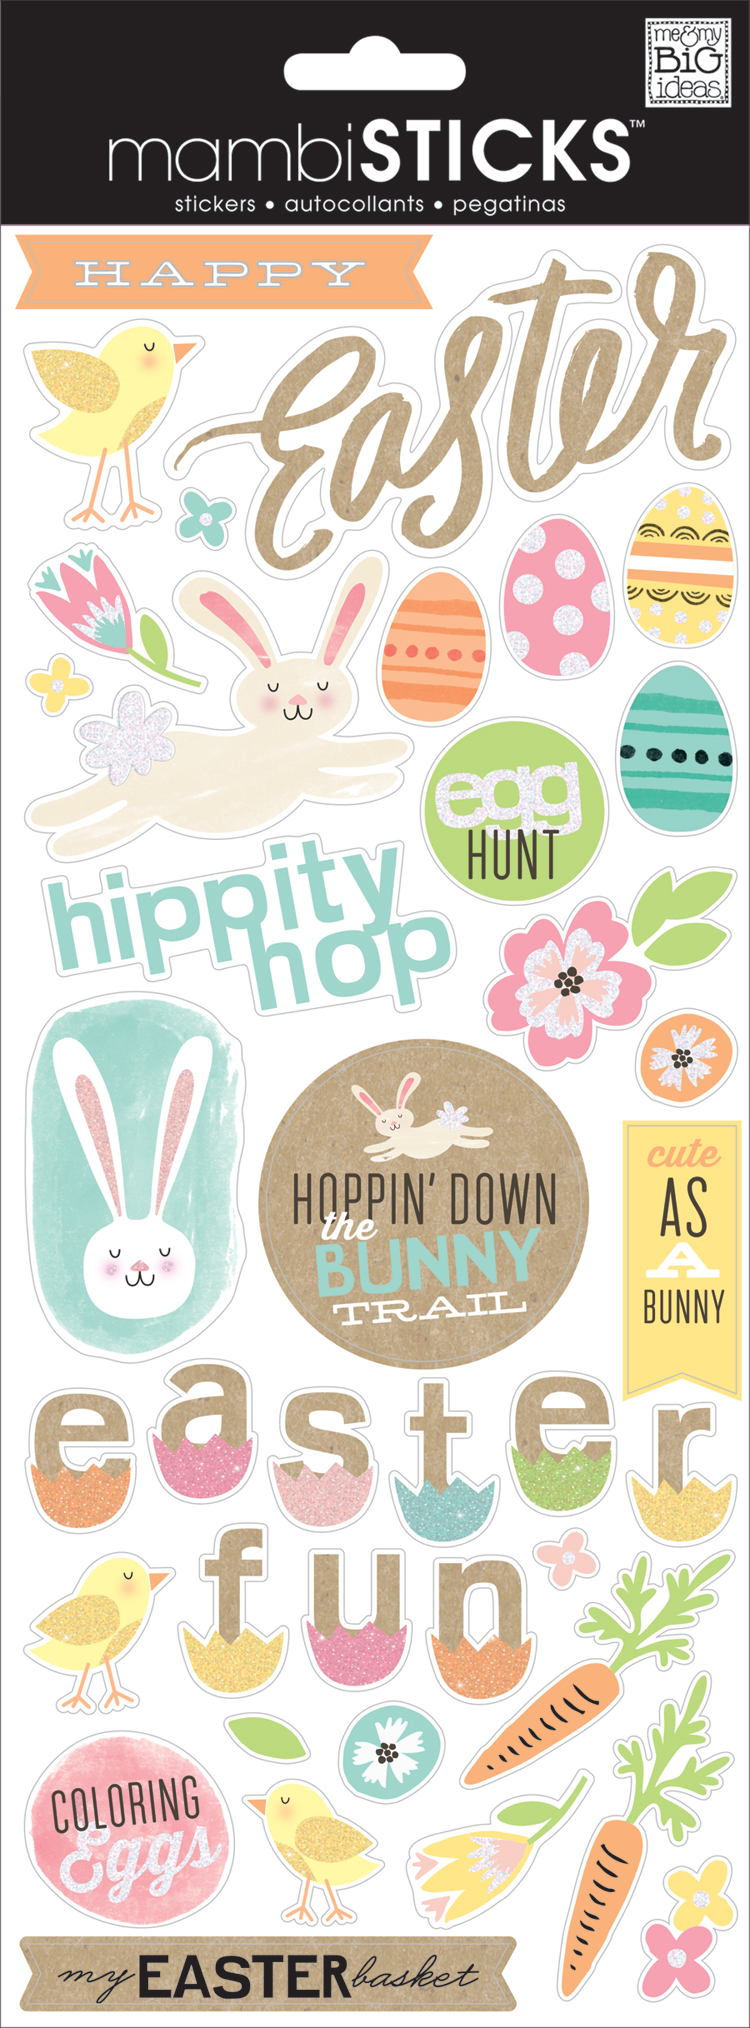 'Happy Easter' mambiSTICKS stickers | me & my BIG ideas.jpg